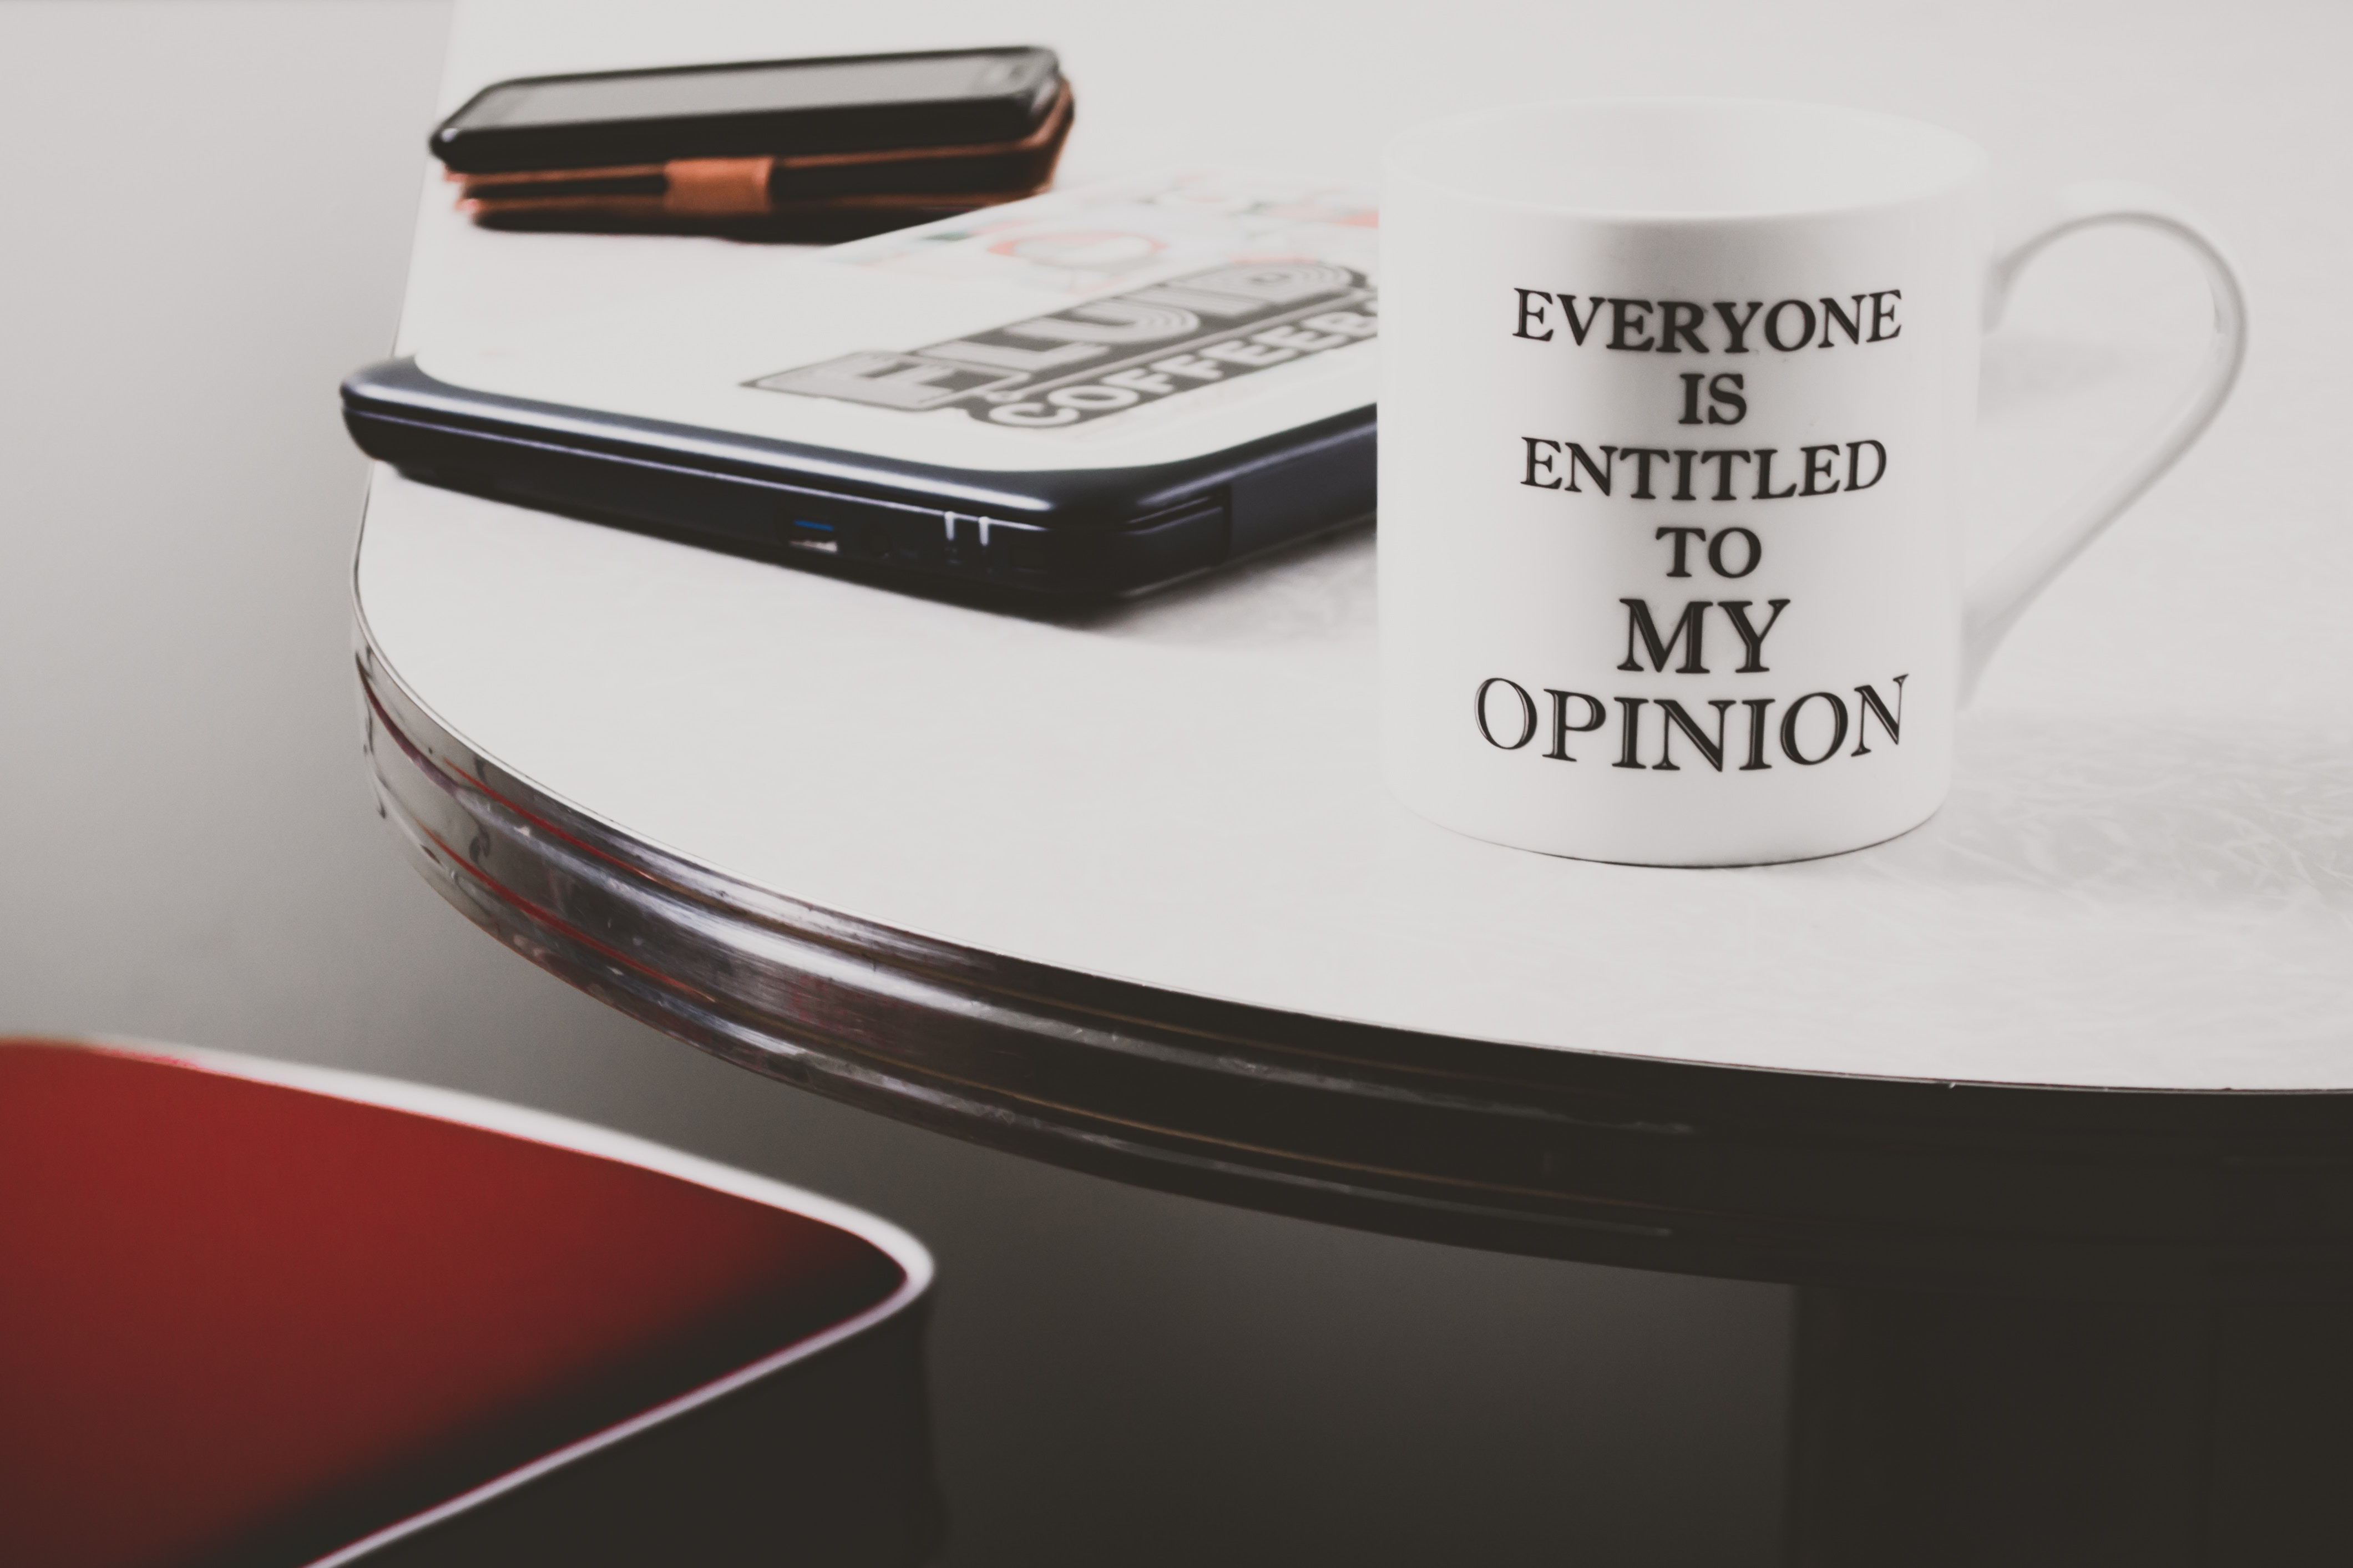 ceramic mug that reads 'Everyone is entitled to my opinion' on a desk next to a laptop